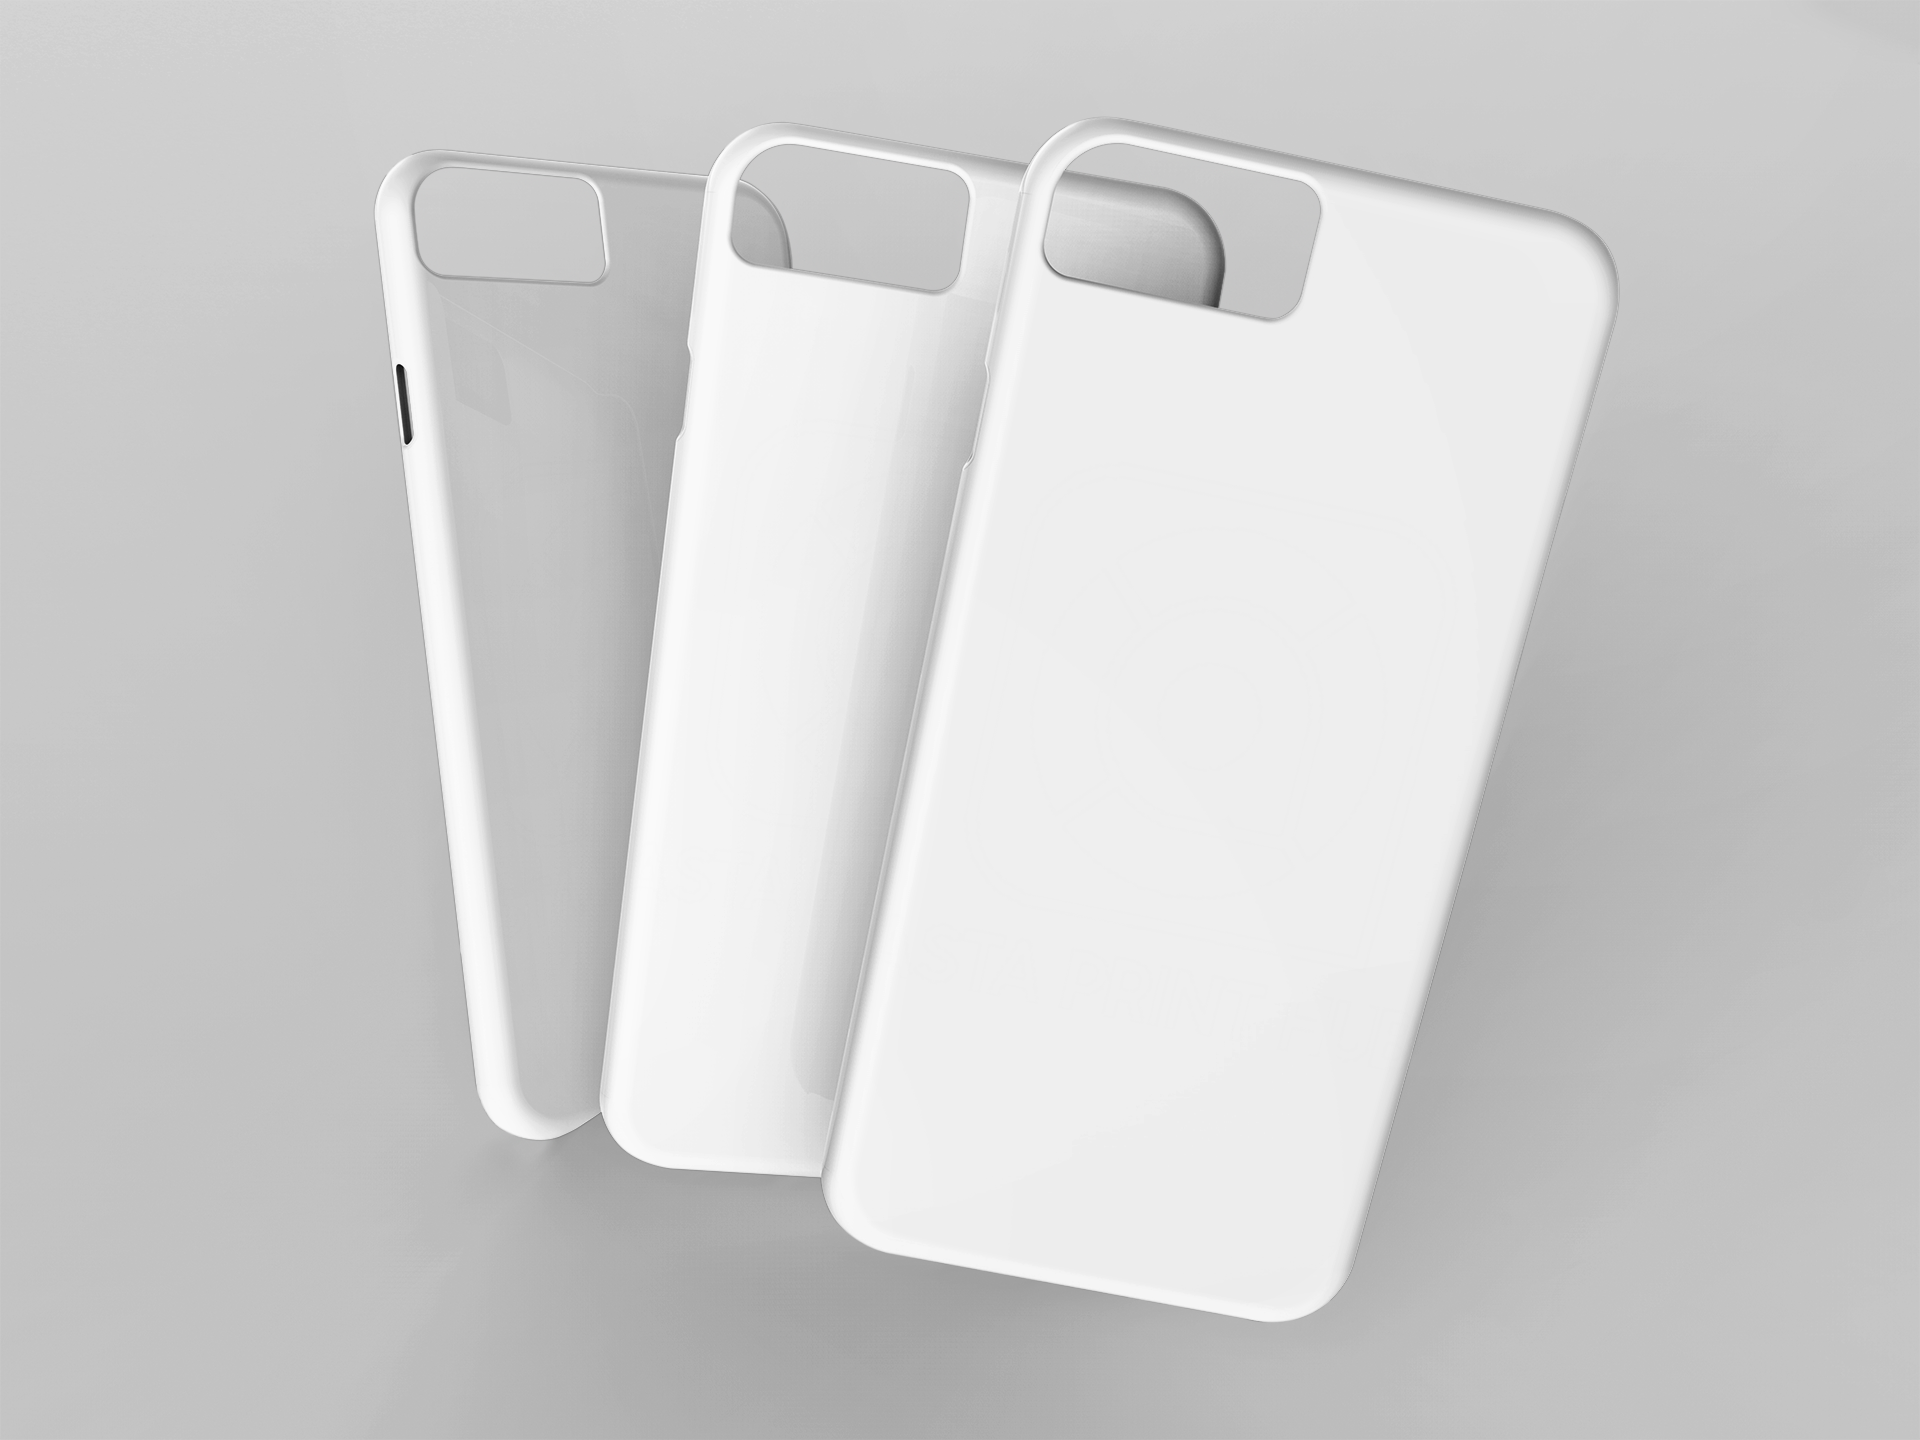 mockup-featuring-three-different-iphone-cases-23143